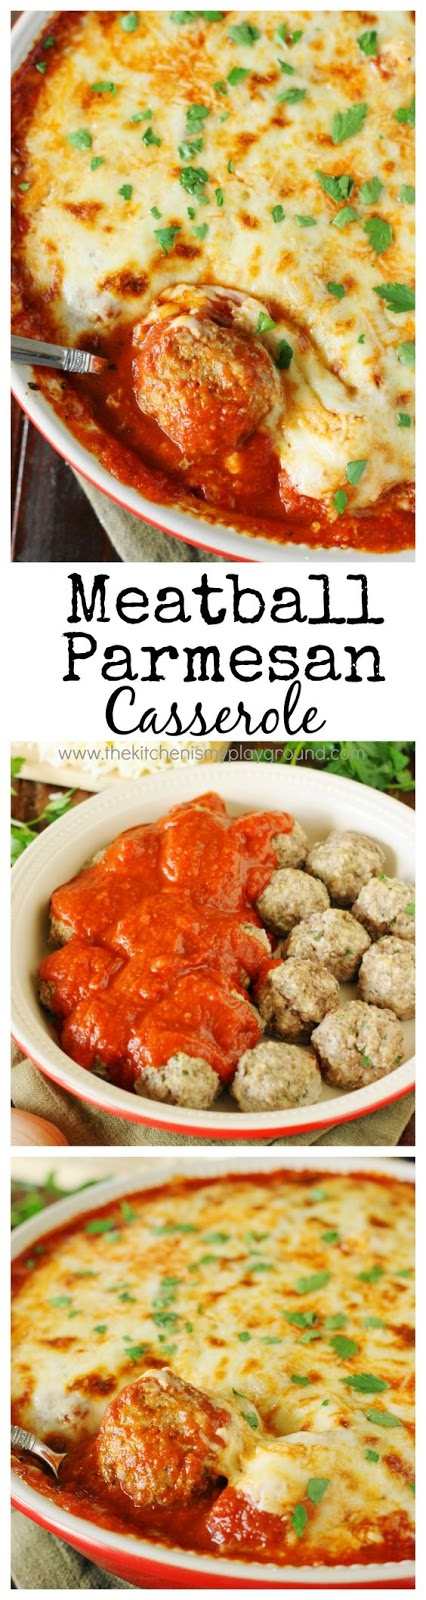 Bake up just five simple ingredients to enjoy the cheesy, saucy goodness of this Meatball Parmesan Casserole!  Spoon it over noodles or warm garlic bread slices for one super easy and satisfying meal.  It makes for a great filling for meatballs subs, too.